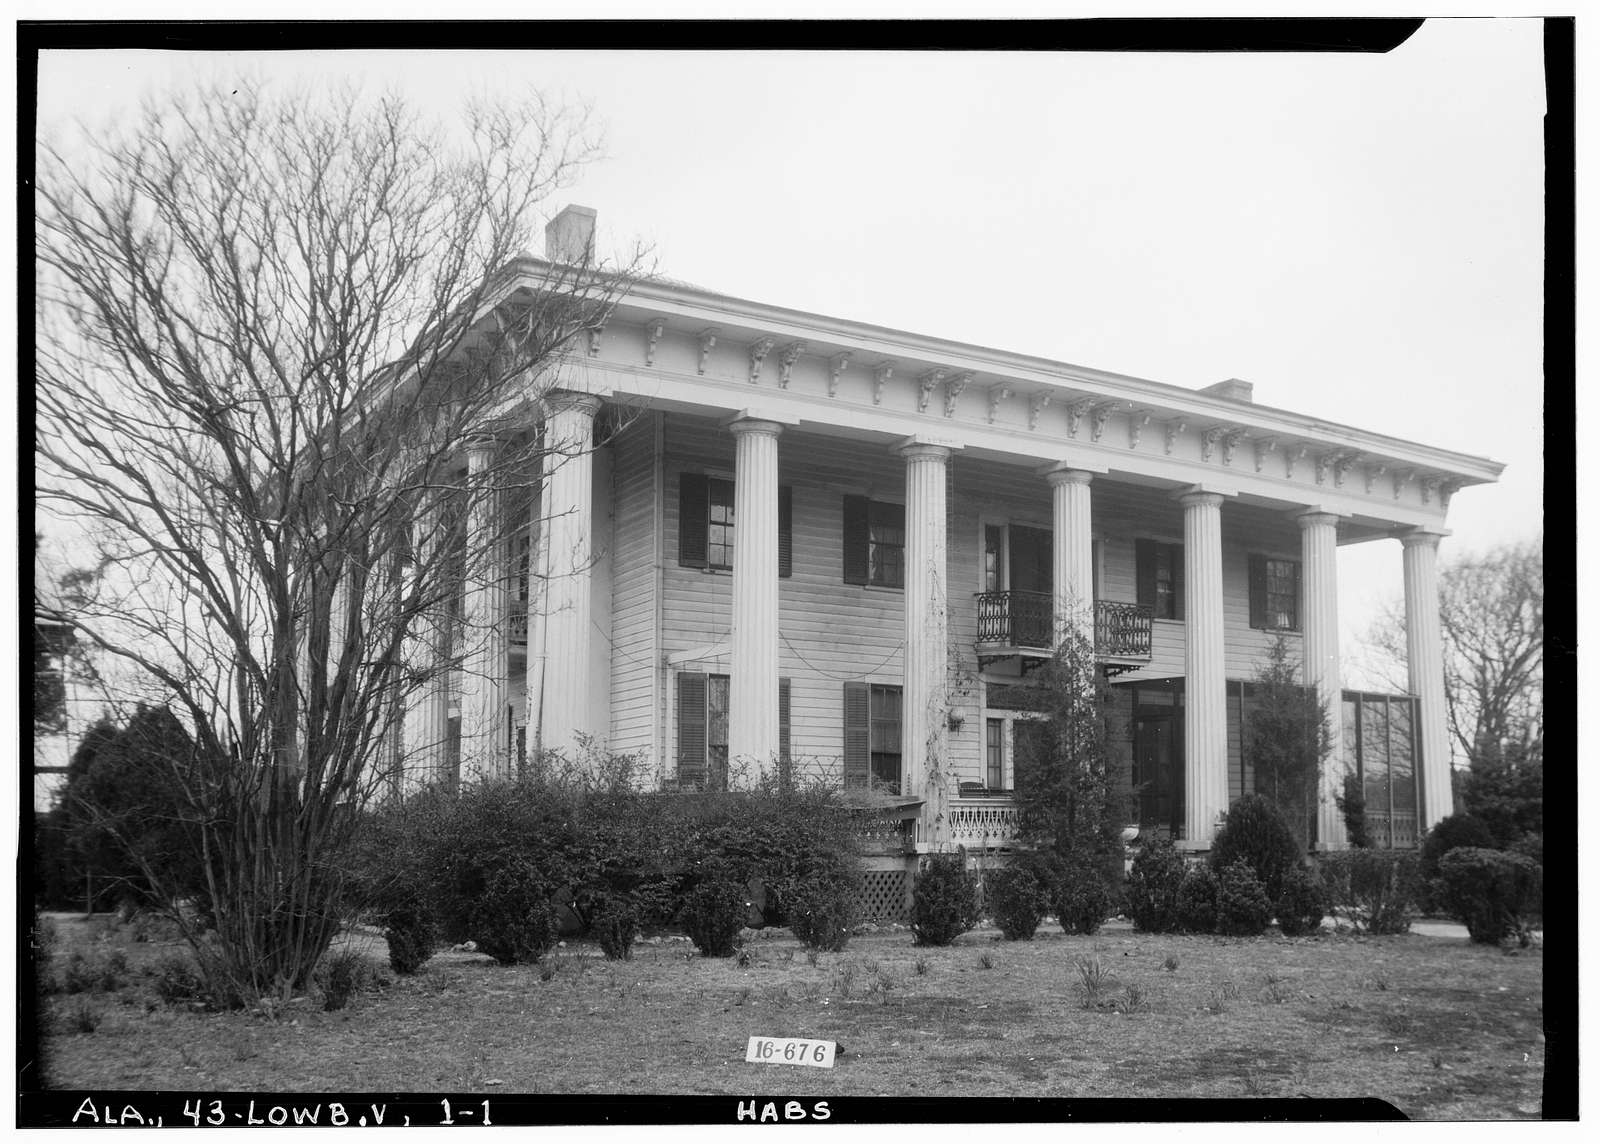 Turner-Dickson House, State Highway 97 (County Road 29), Lowndesboro, Lowndes County, AL